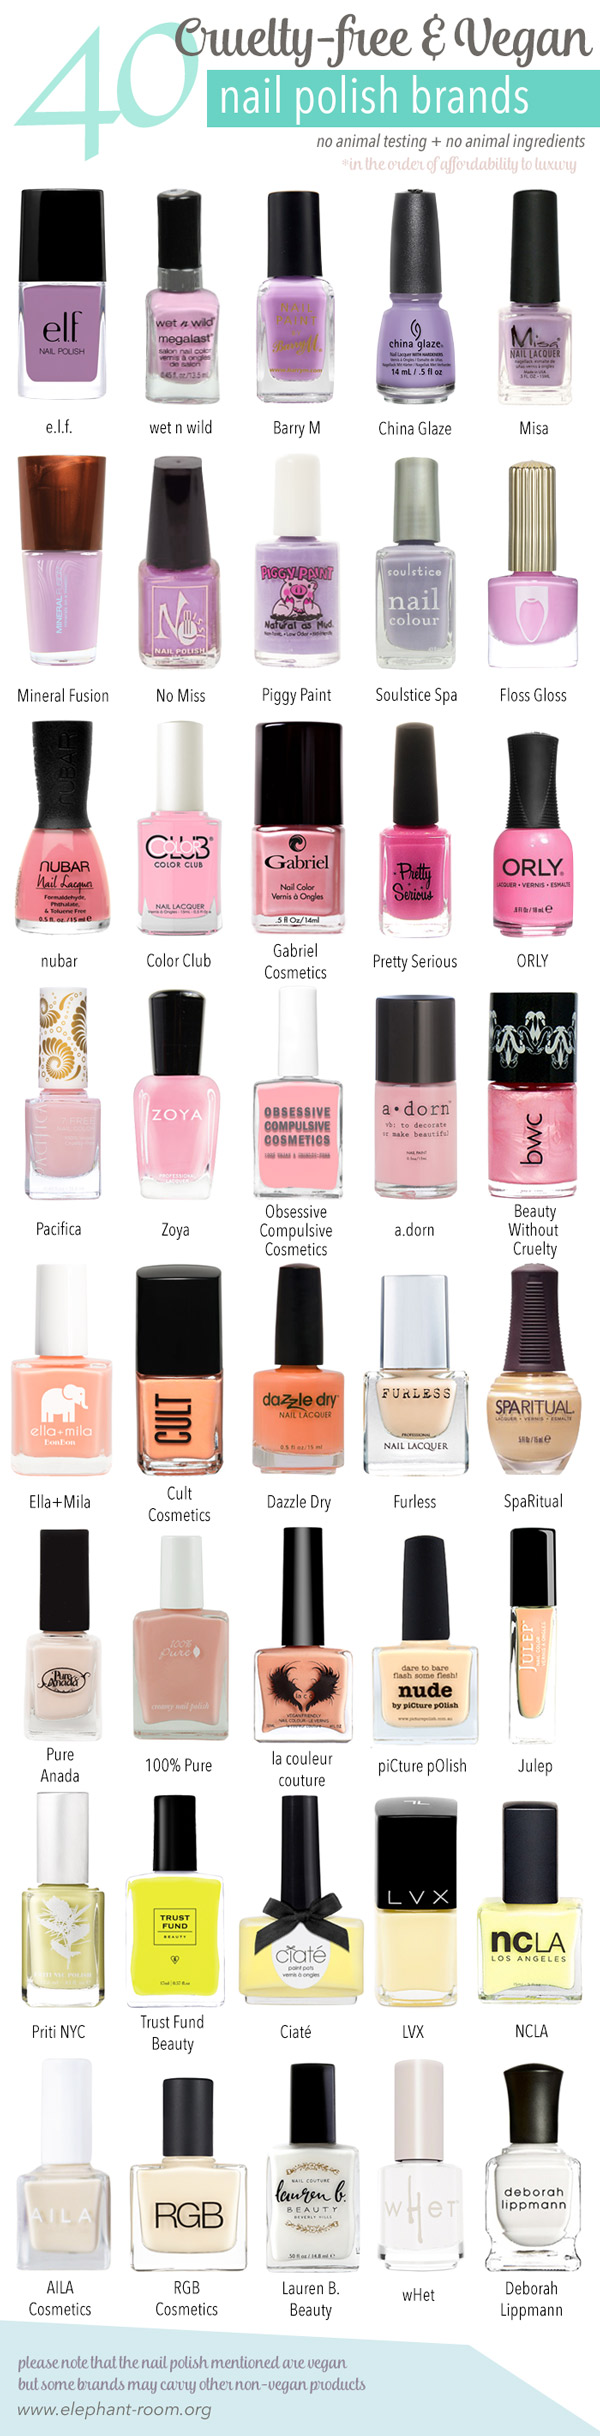 Cruelty Free and Vegan Nail Polish Brands